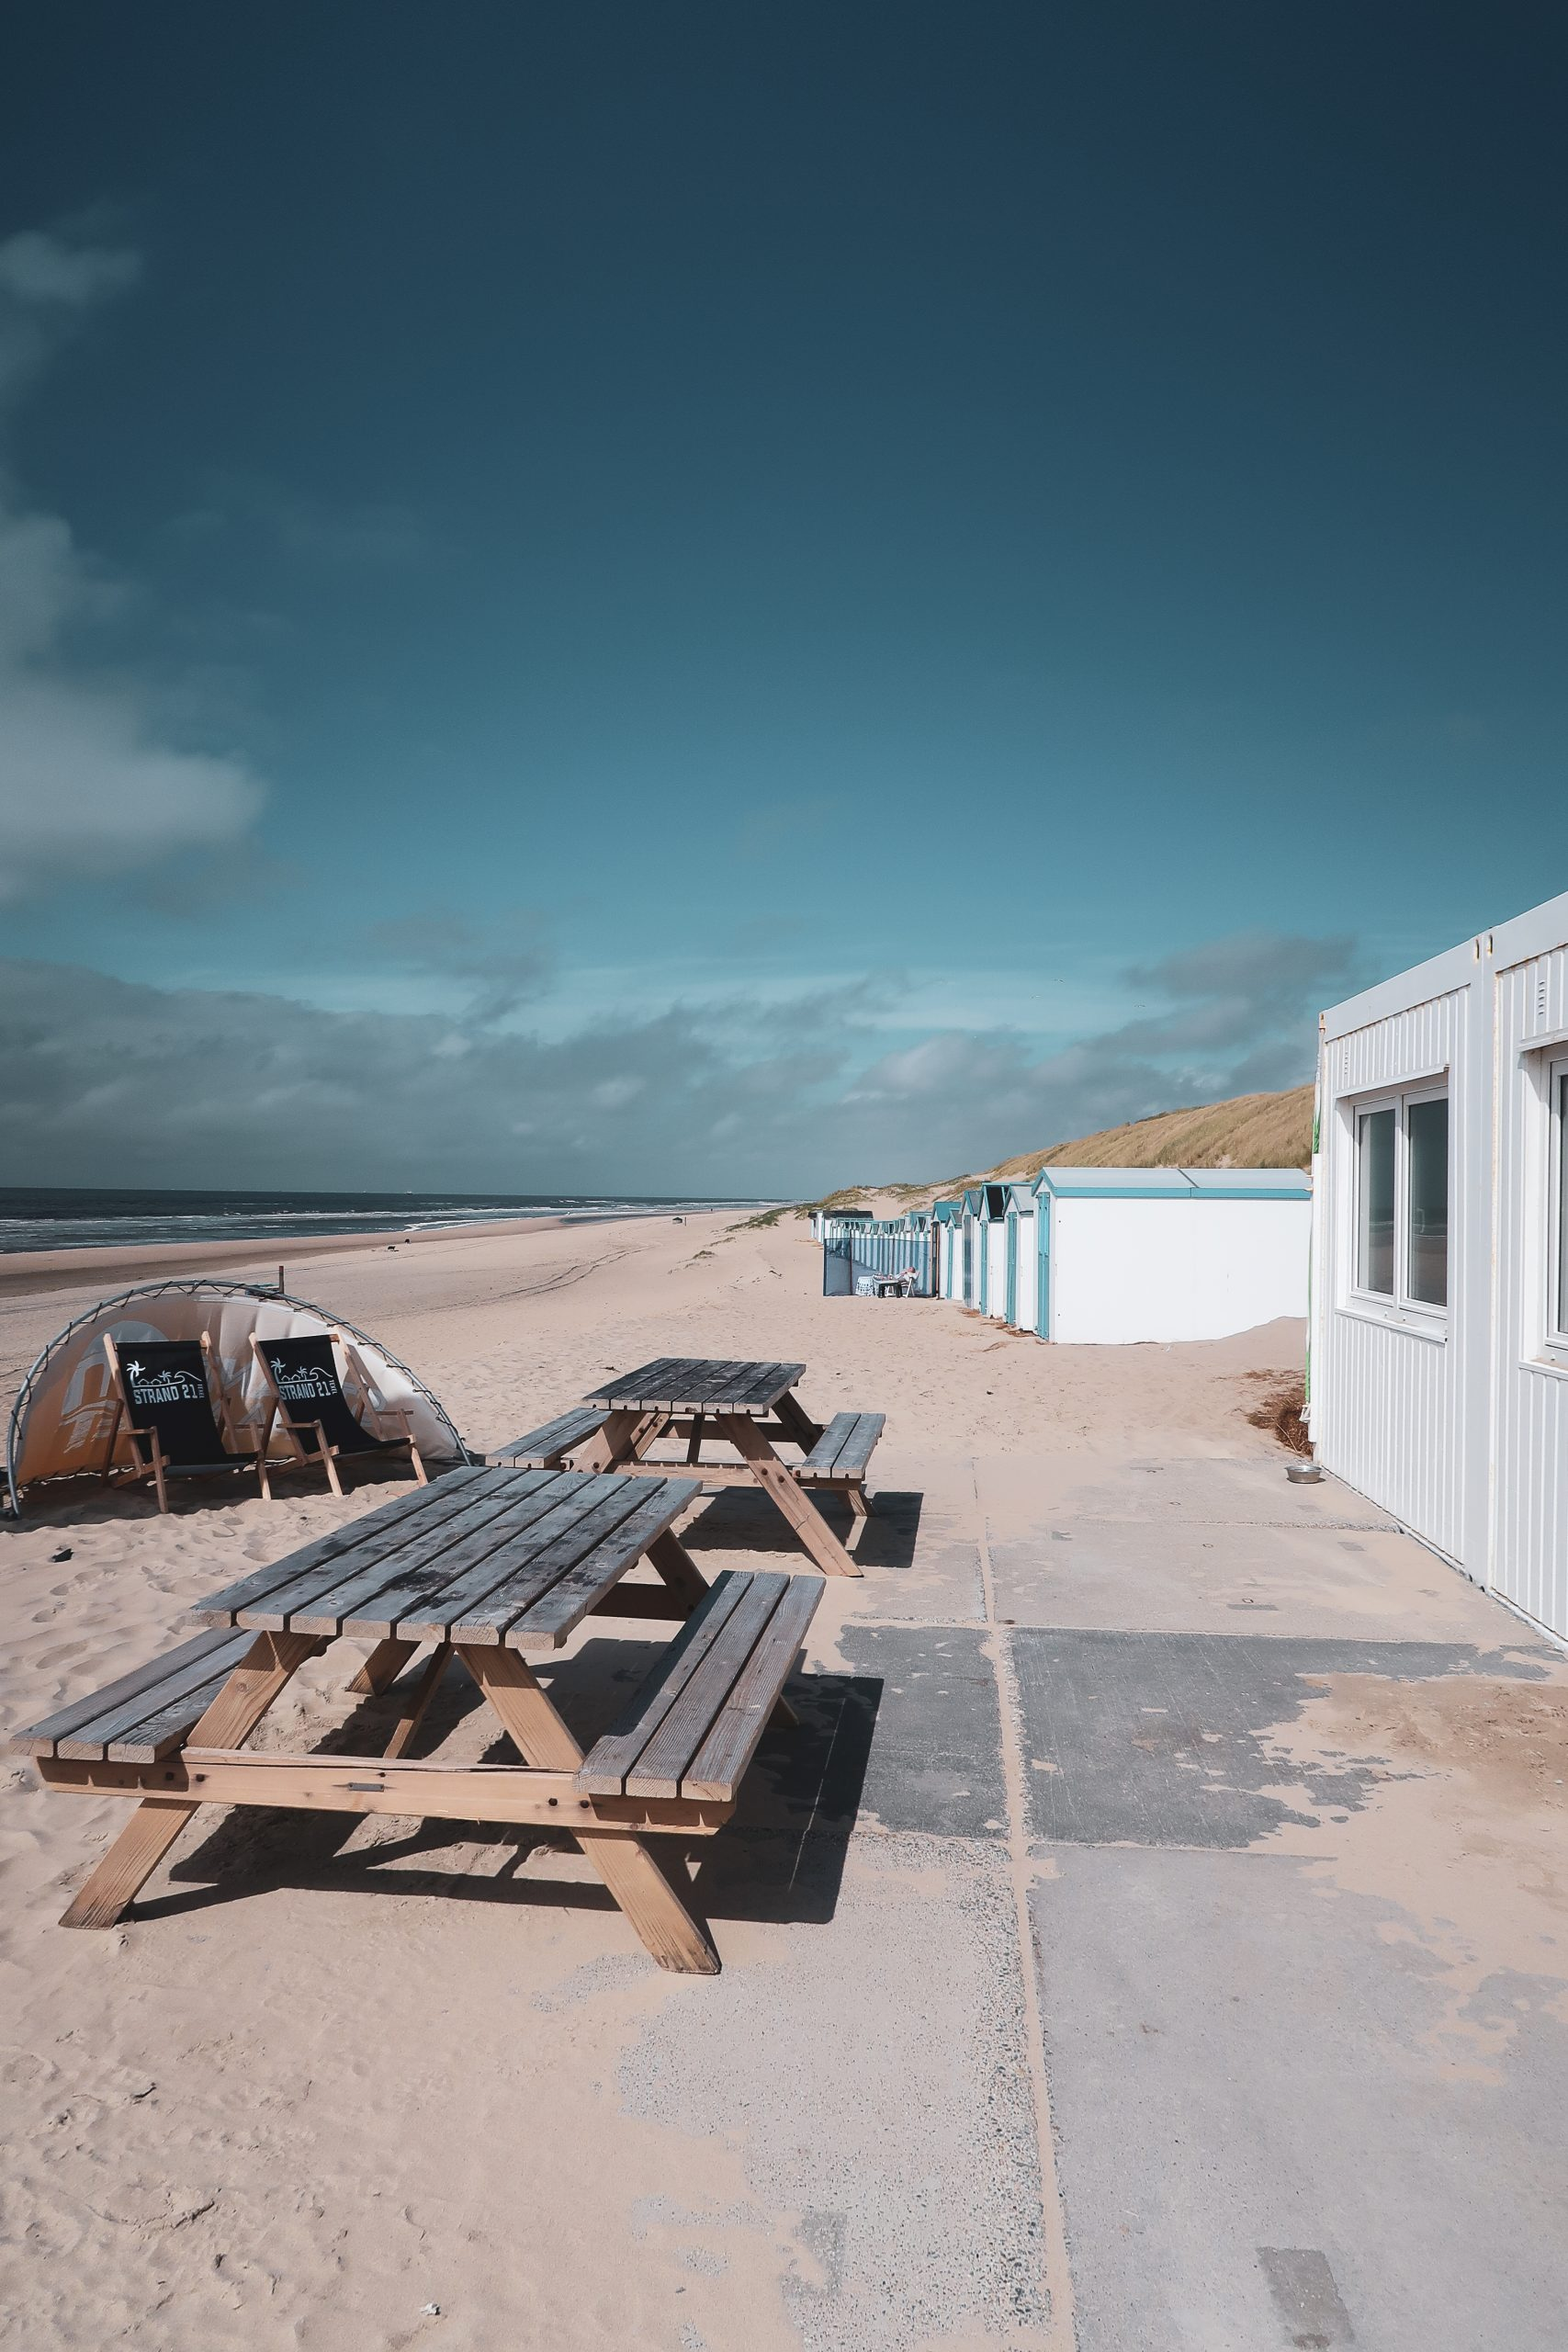 paal 21 texel strandtent